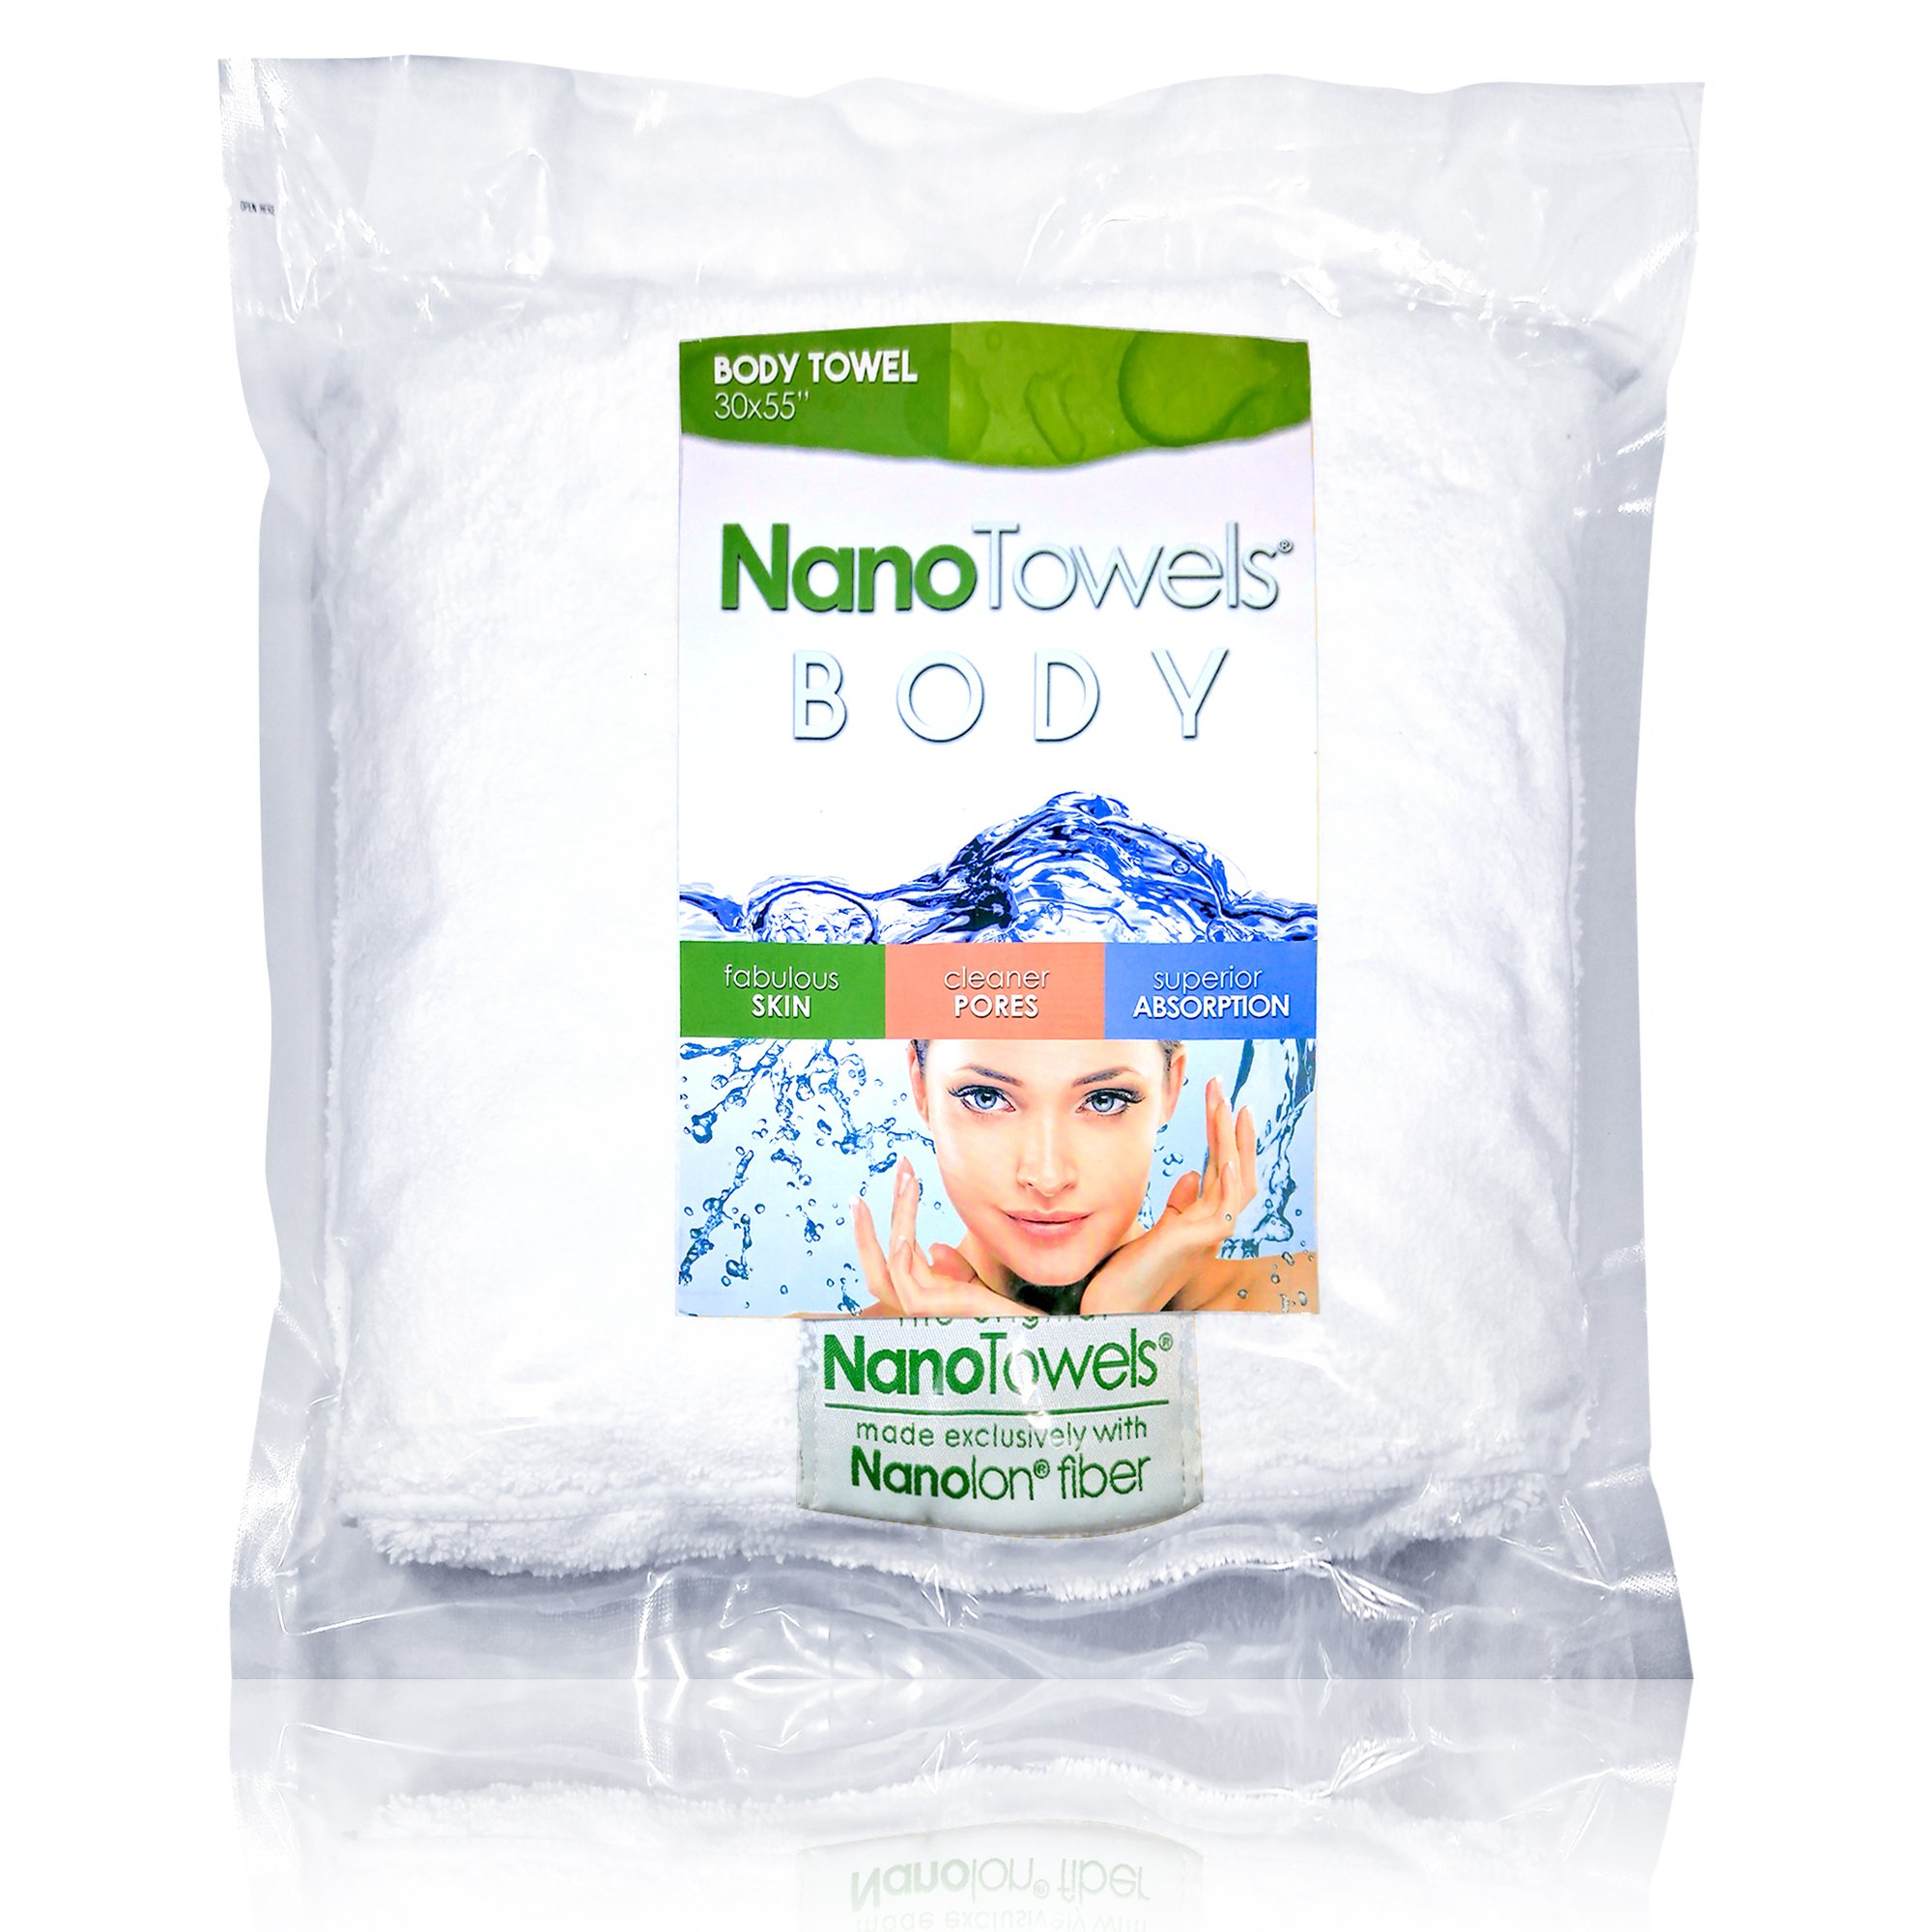 "Nano Towels Body Bath & Shower Towel. Huge & Super Absorbent. Wipes Away Dirt, Oil and Cosmetics. Use As Your Sports, Travel, Fitness, Kids, Beauty, Spa Or Salon Luxury Towel. 30 x 55""."